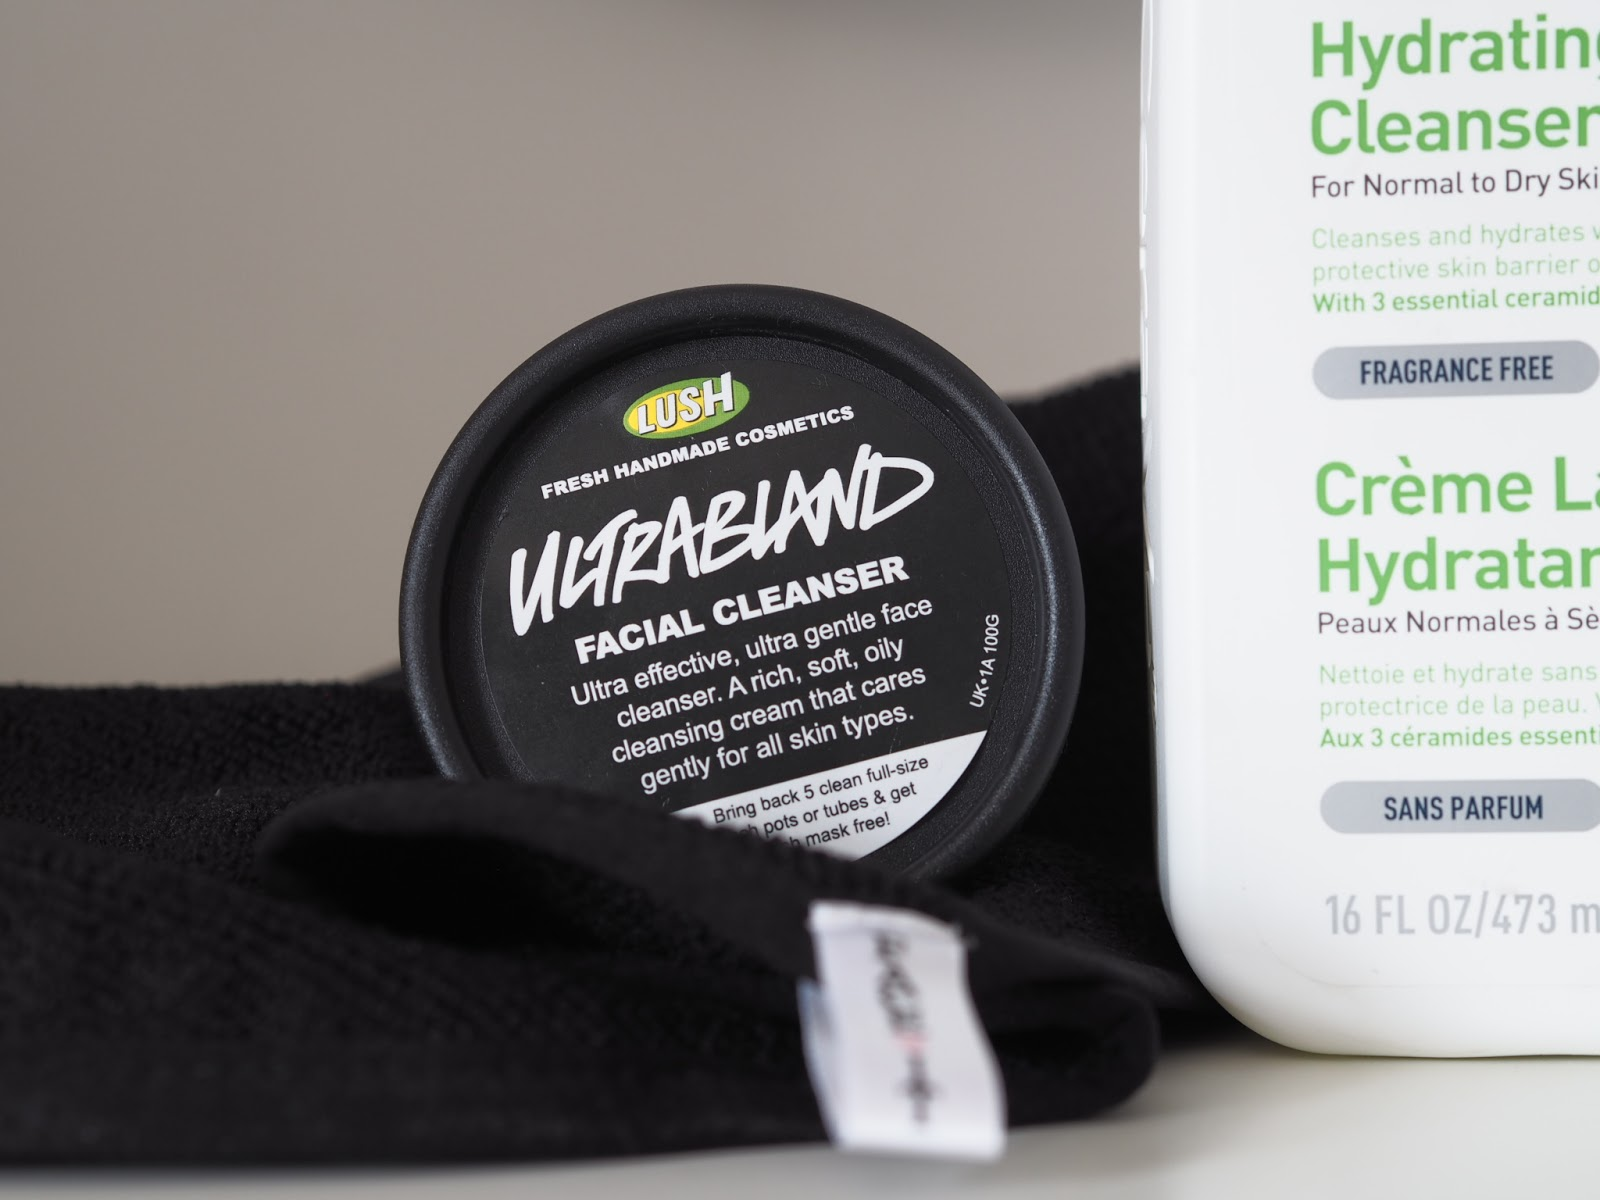 Lush ultrabland face cleanser